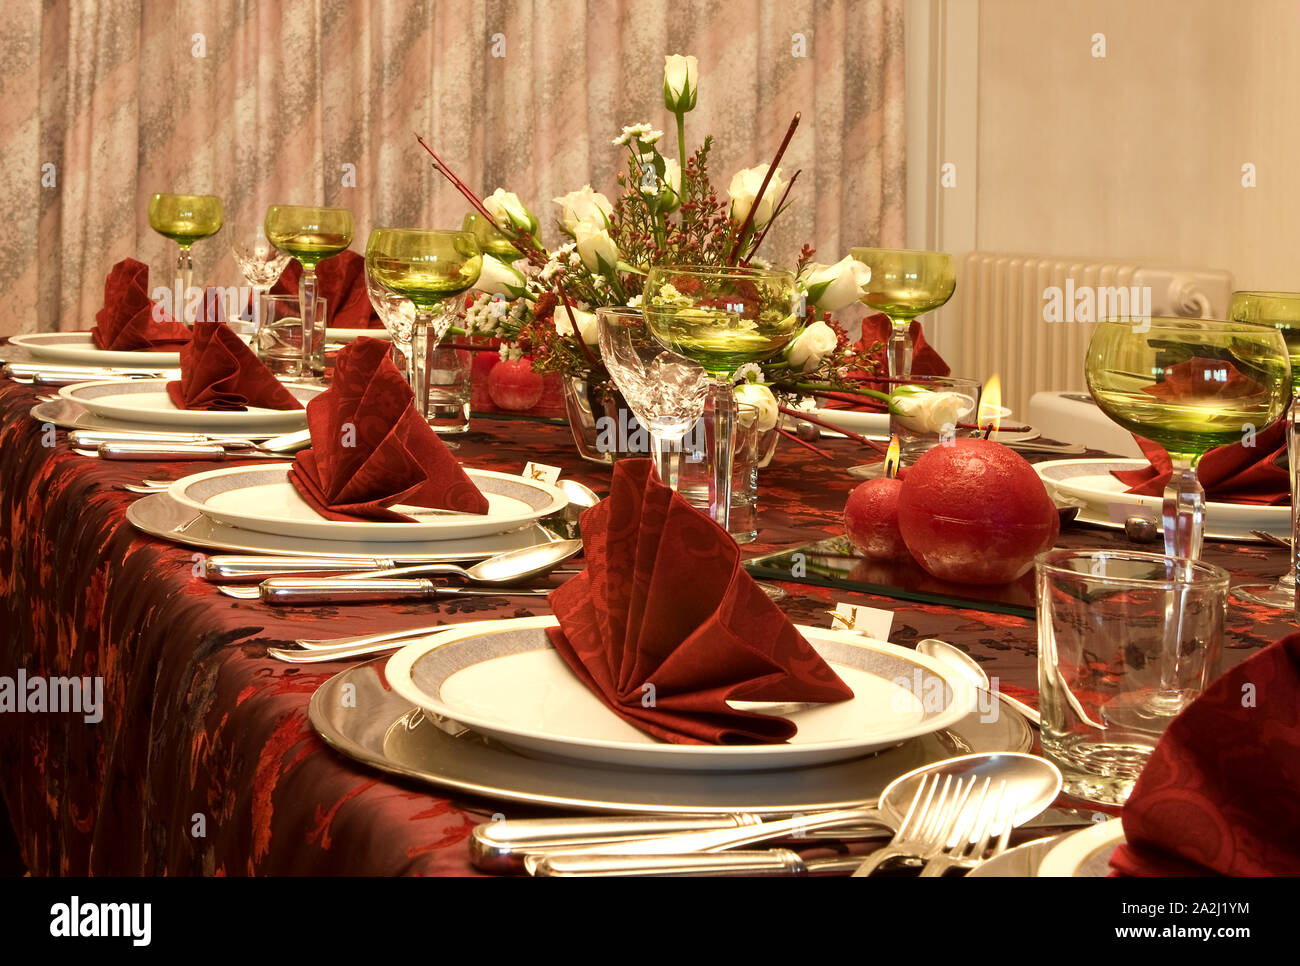 Christmas Dinner Table Elegant Napkins High Resolution Stock Photography And Images Alamy